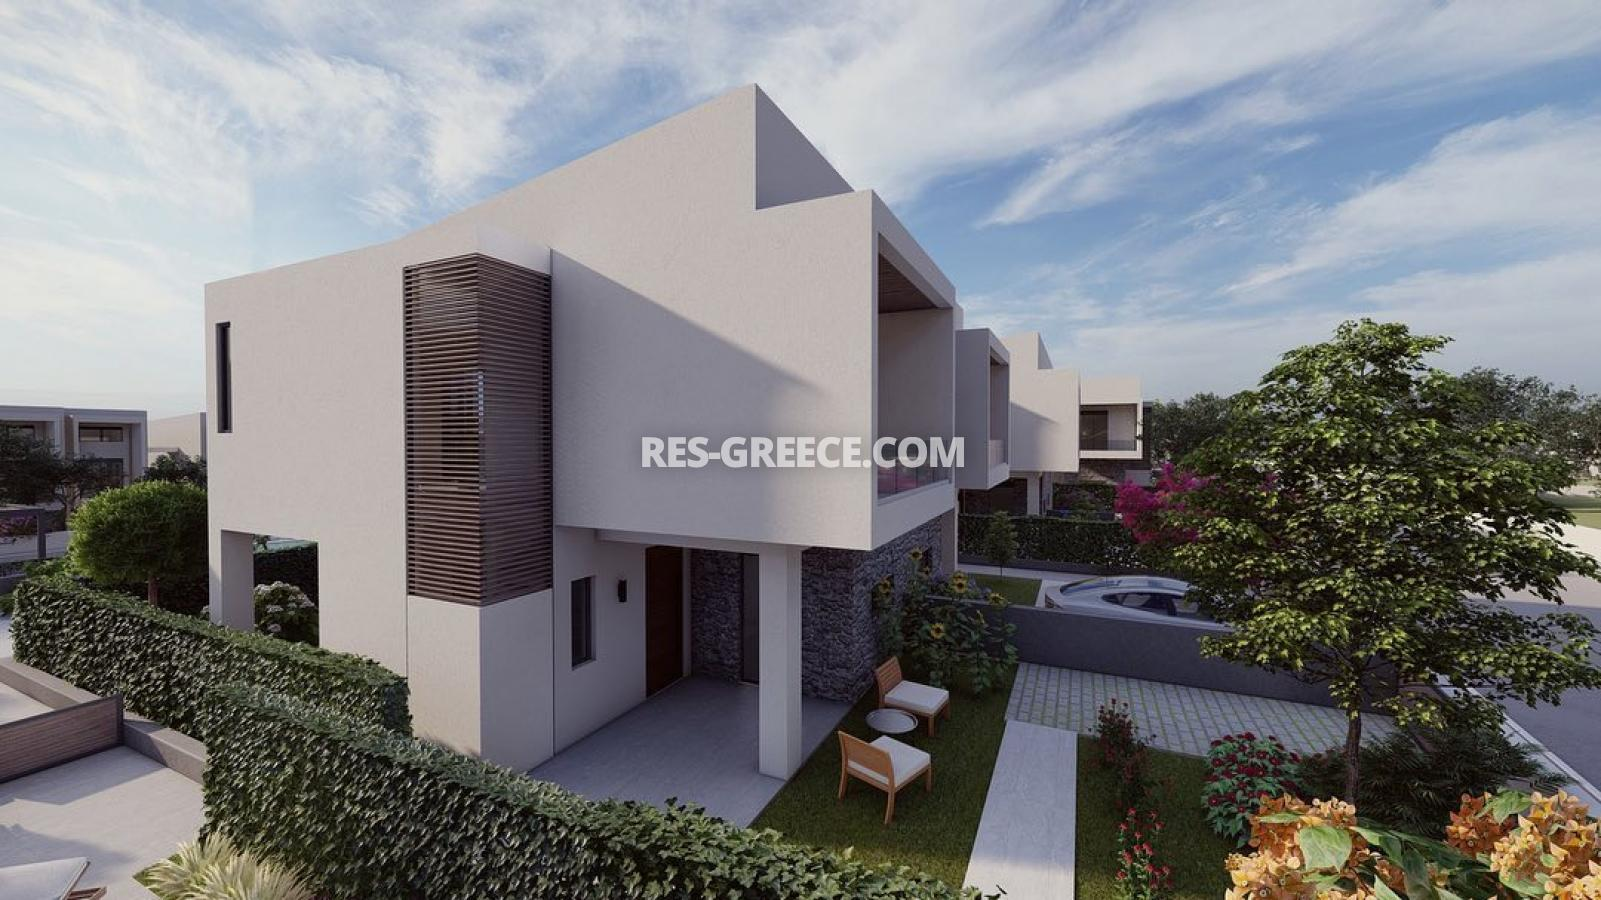 Anasa townhouses, Halkidiki-Sithonia, Greece - cottages in a new complex with the pool - Photo 4